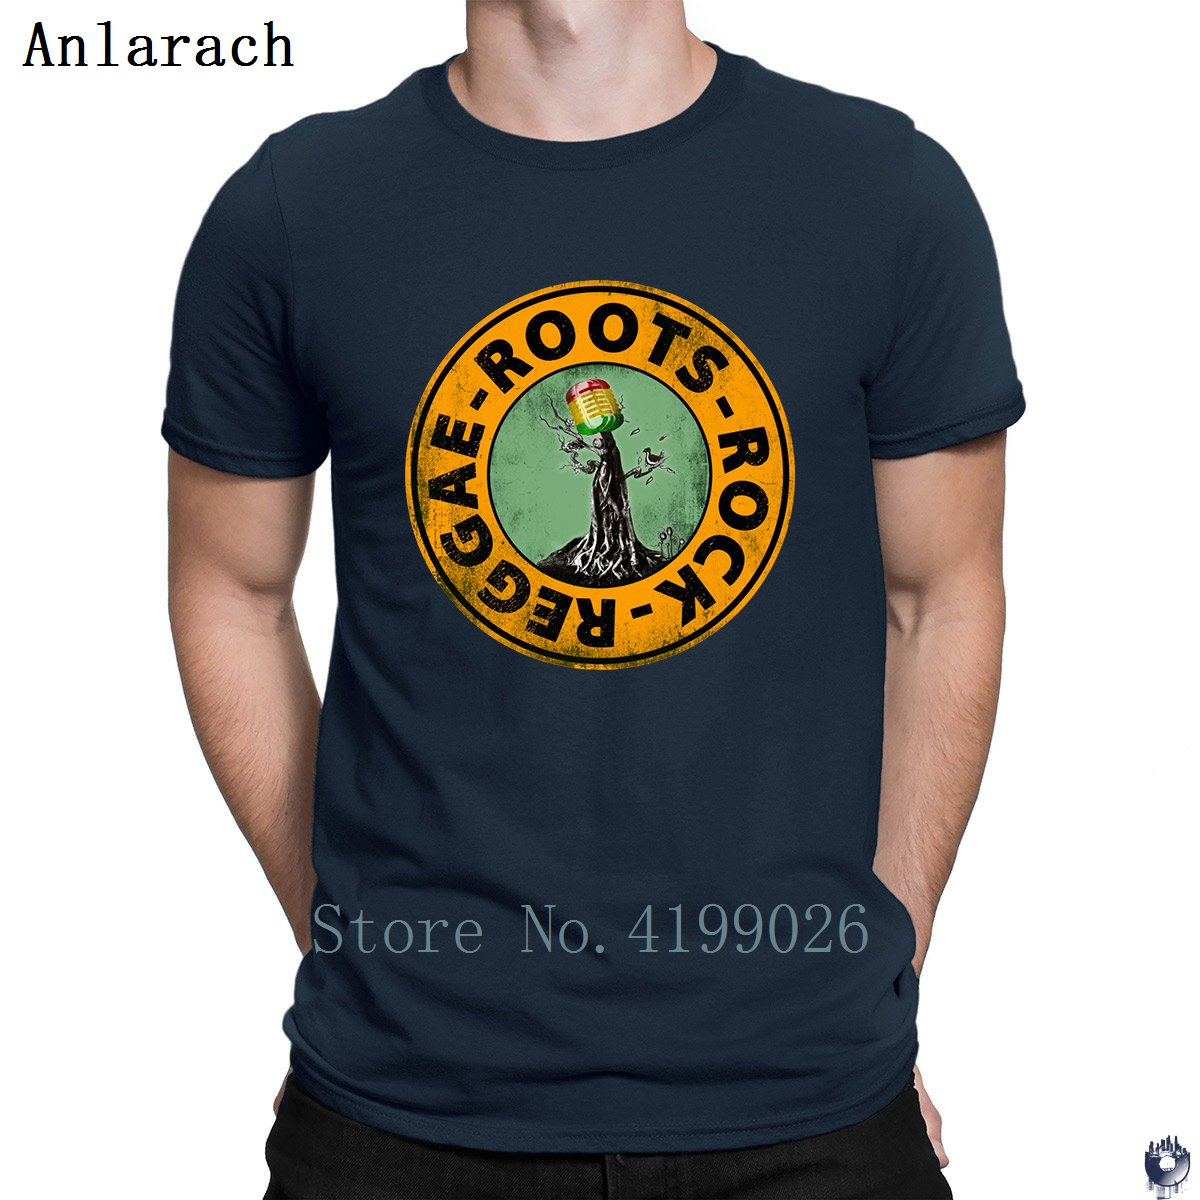 Roots Rock Reggae. t shirts Euro Size Pop Top Tee Basic Solid men's tshirt Designing High quality summer Anlarach New Style-in T-Shirts from Men's Clothing